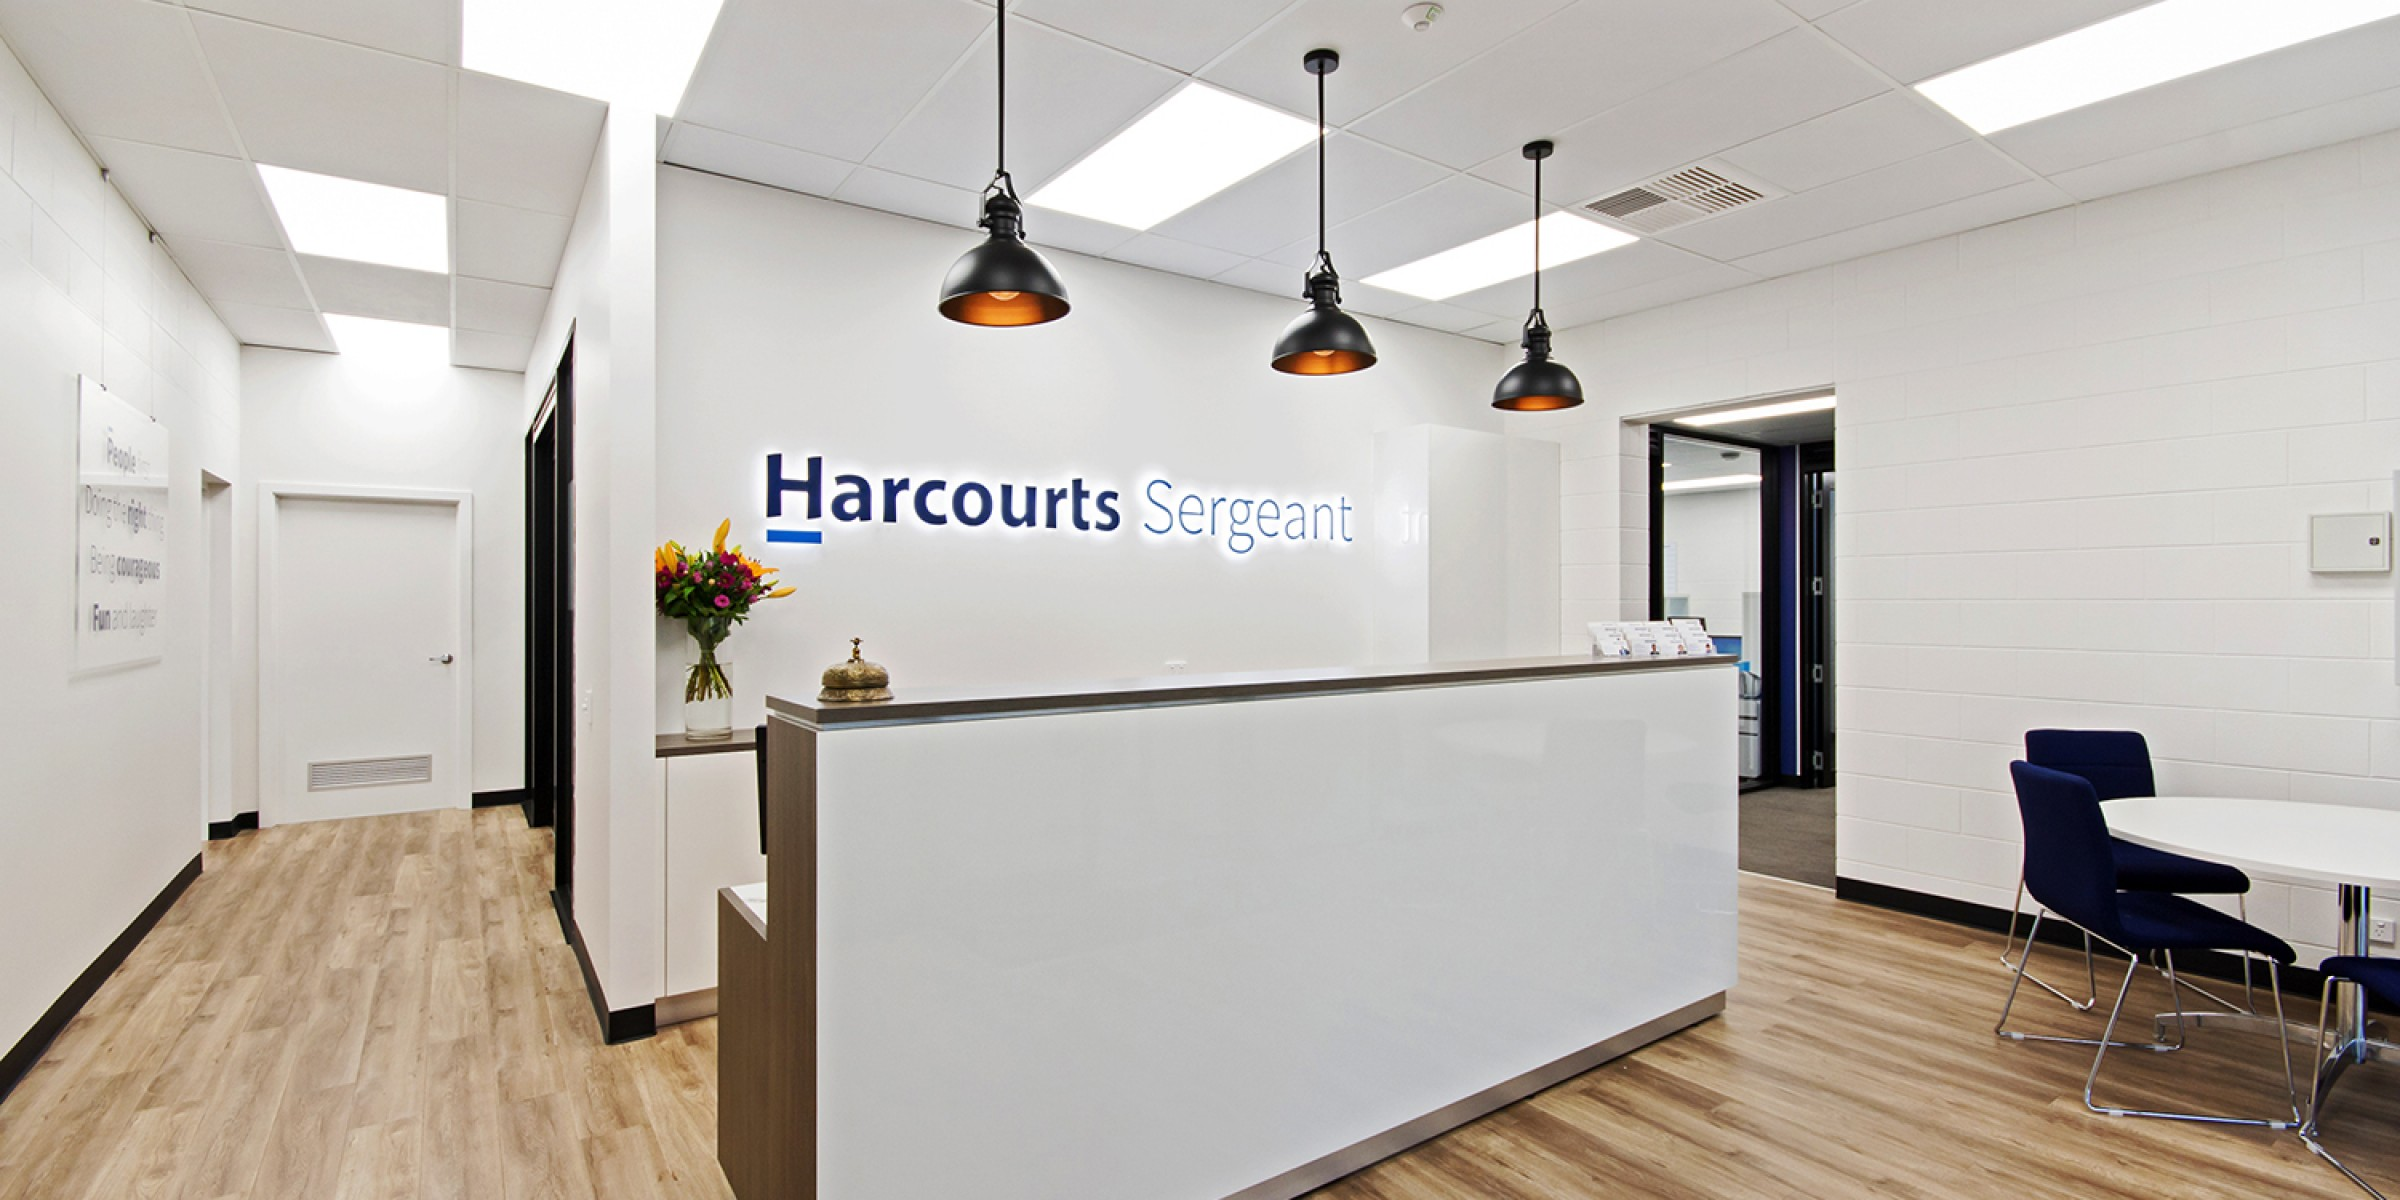 Photo of architecturally designed project at Harcourts Sergeant, Salisbury